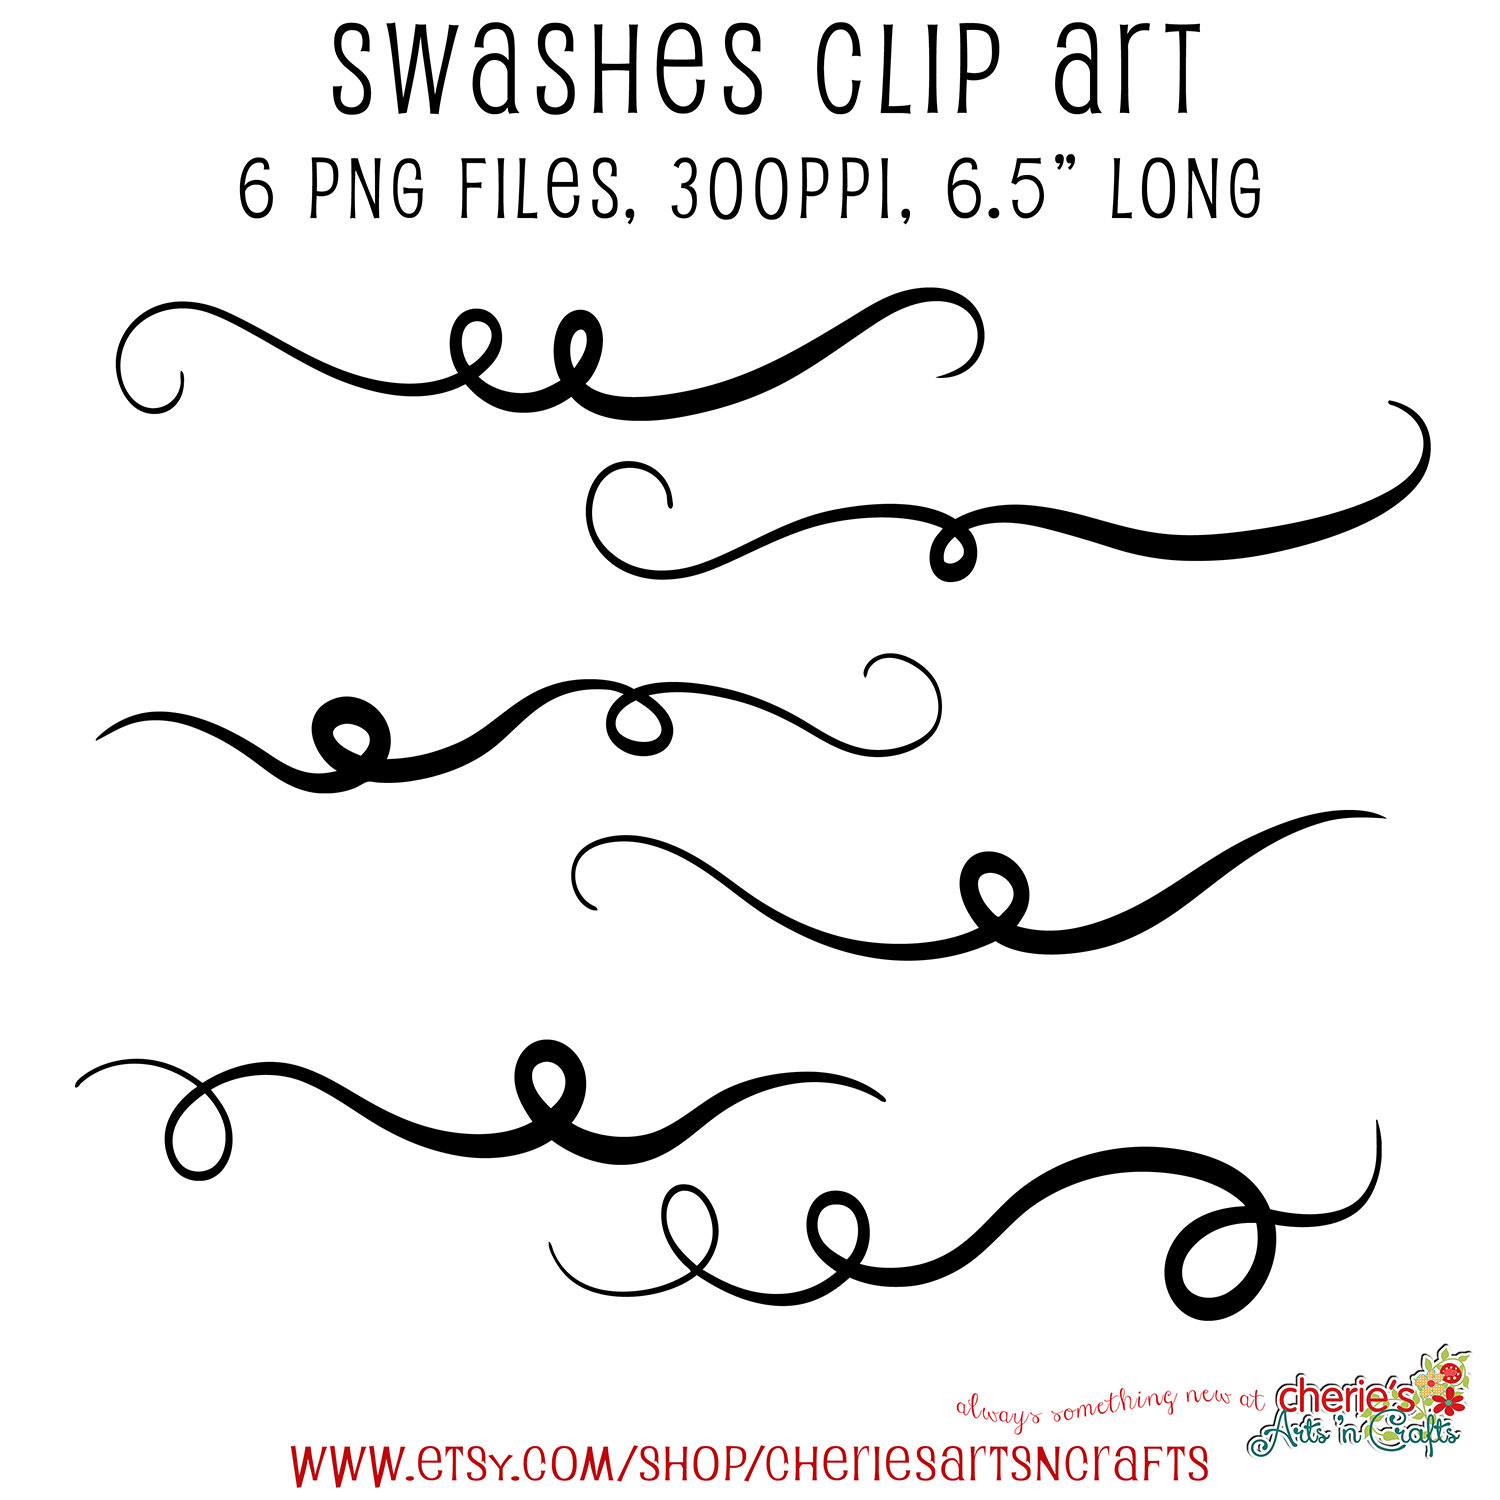 Swashes Swash Clip Art Decorative Swirls Decorative.